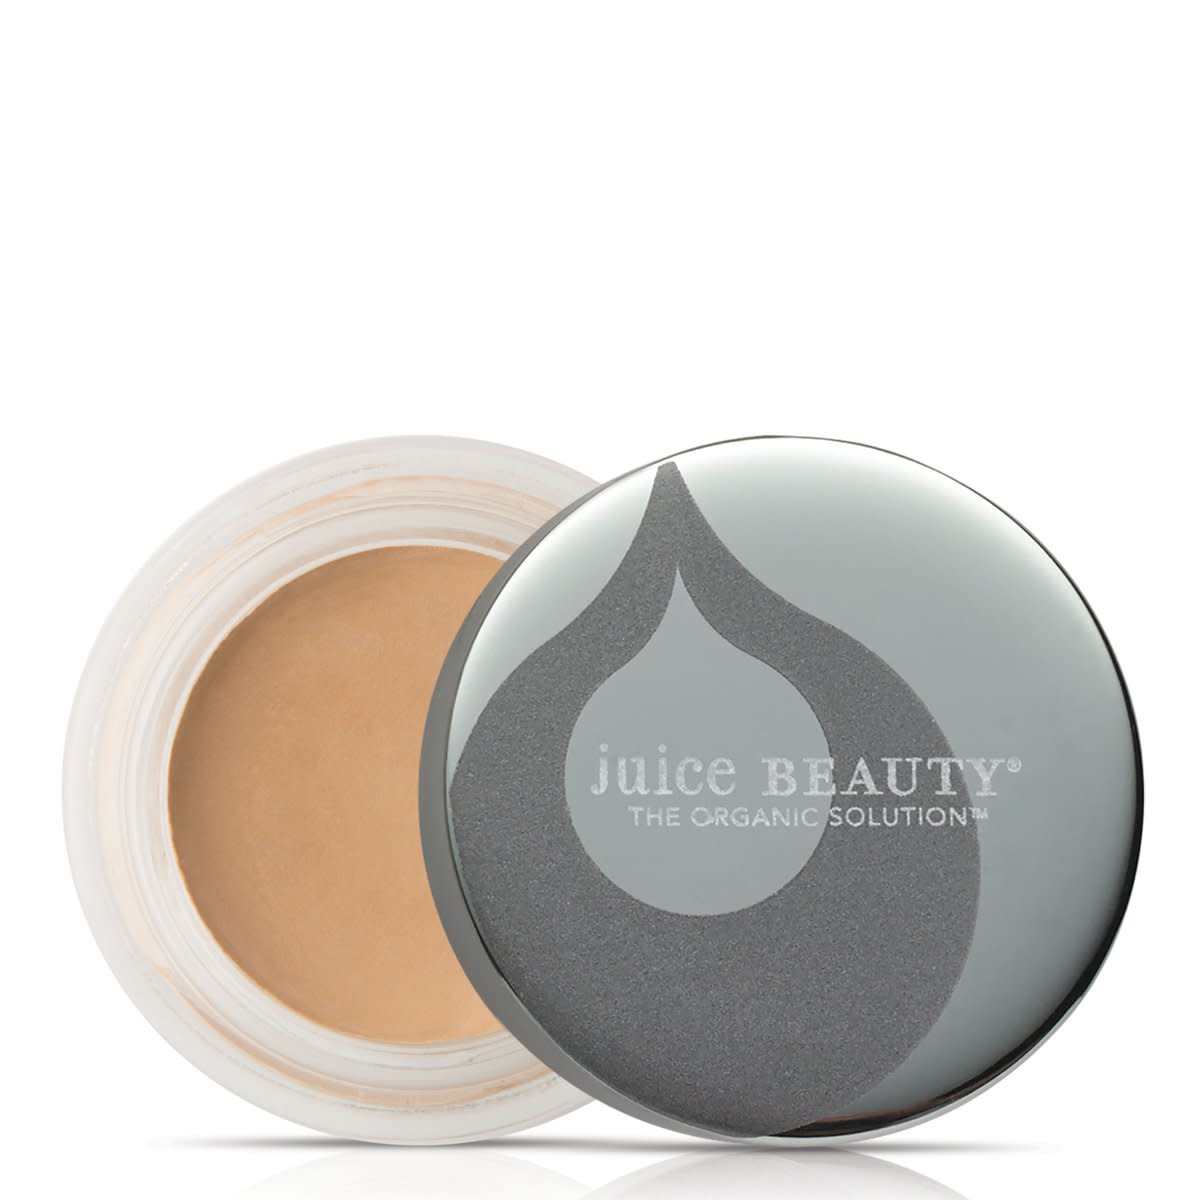 PP-Perfecting-Concealer-main-web-photo-2000x2000_1200x